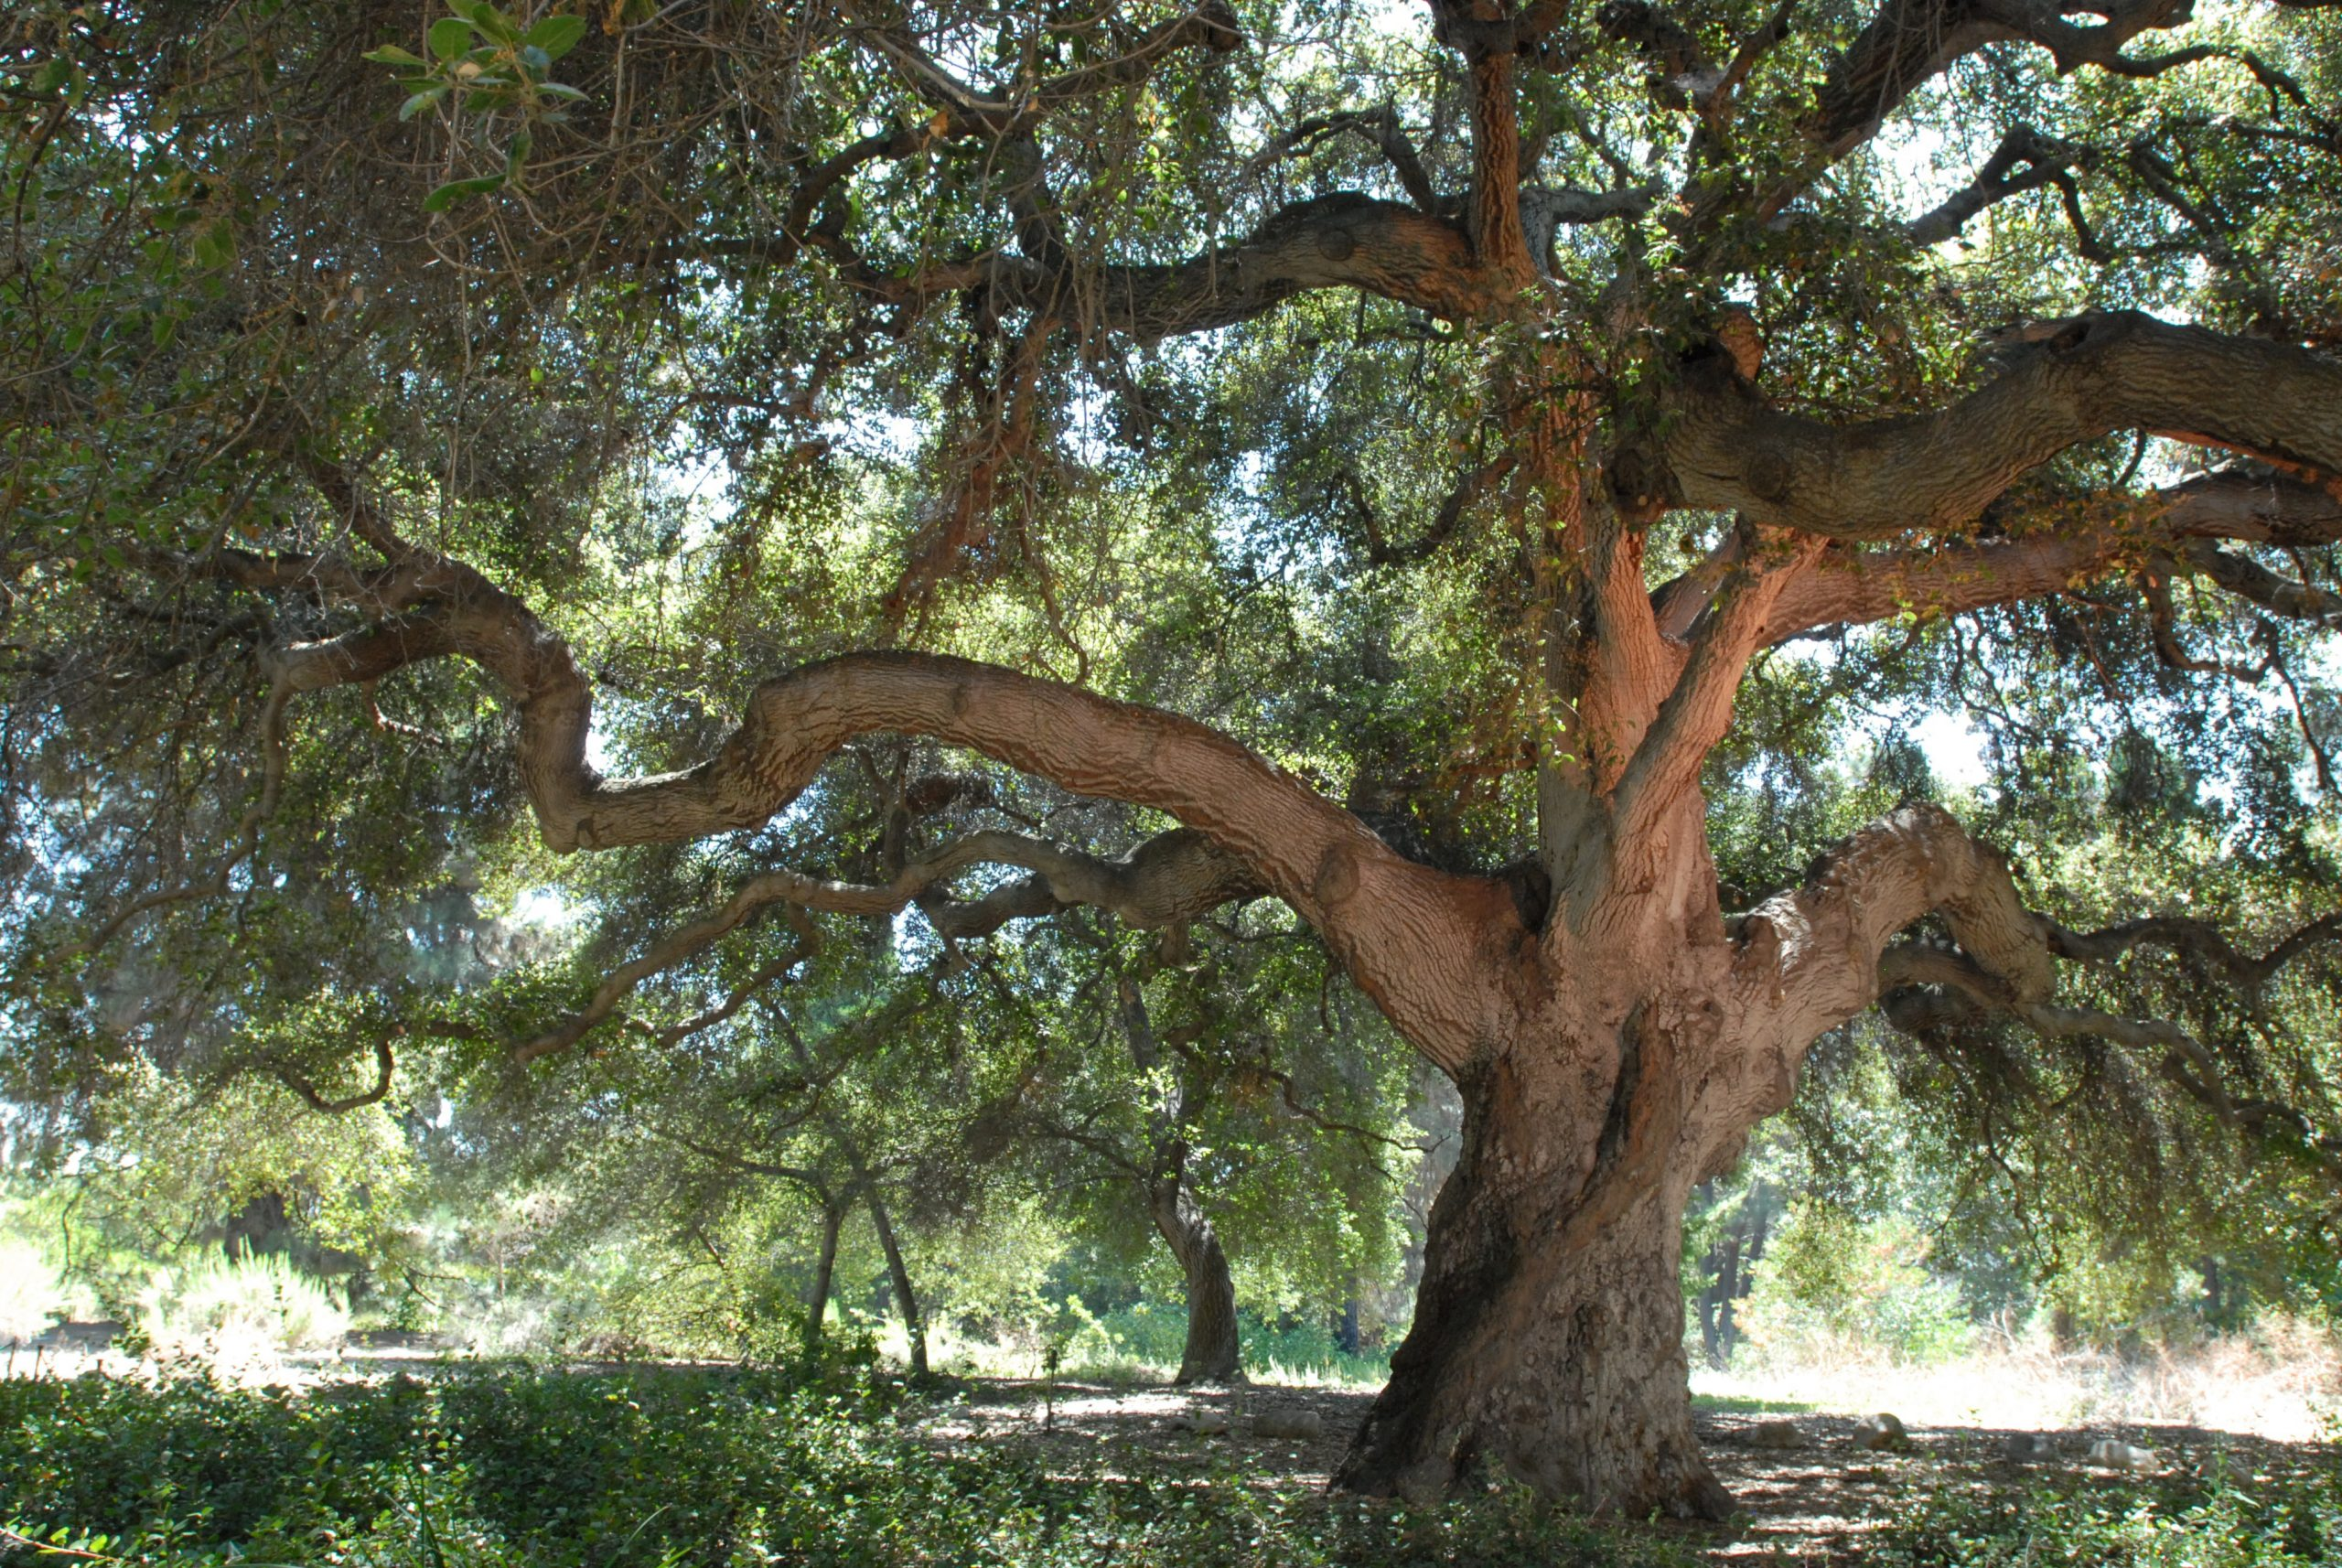 Rancho Santa Ana Botanic Garden is home to many native trees including some truly majestic oaks.